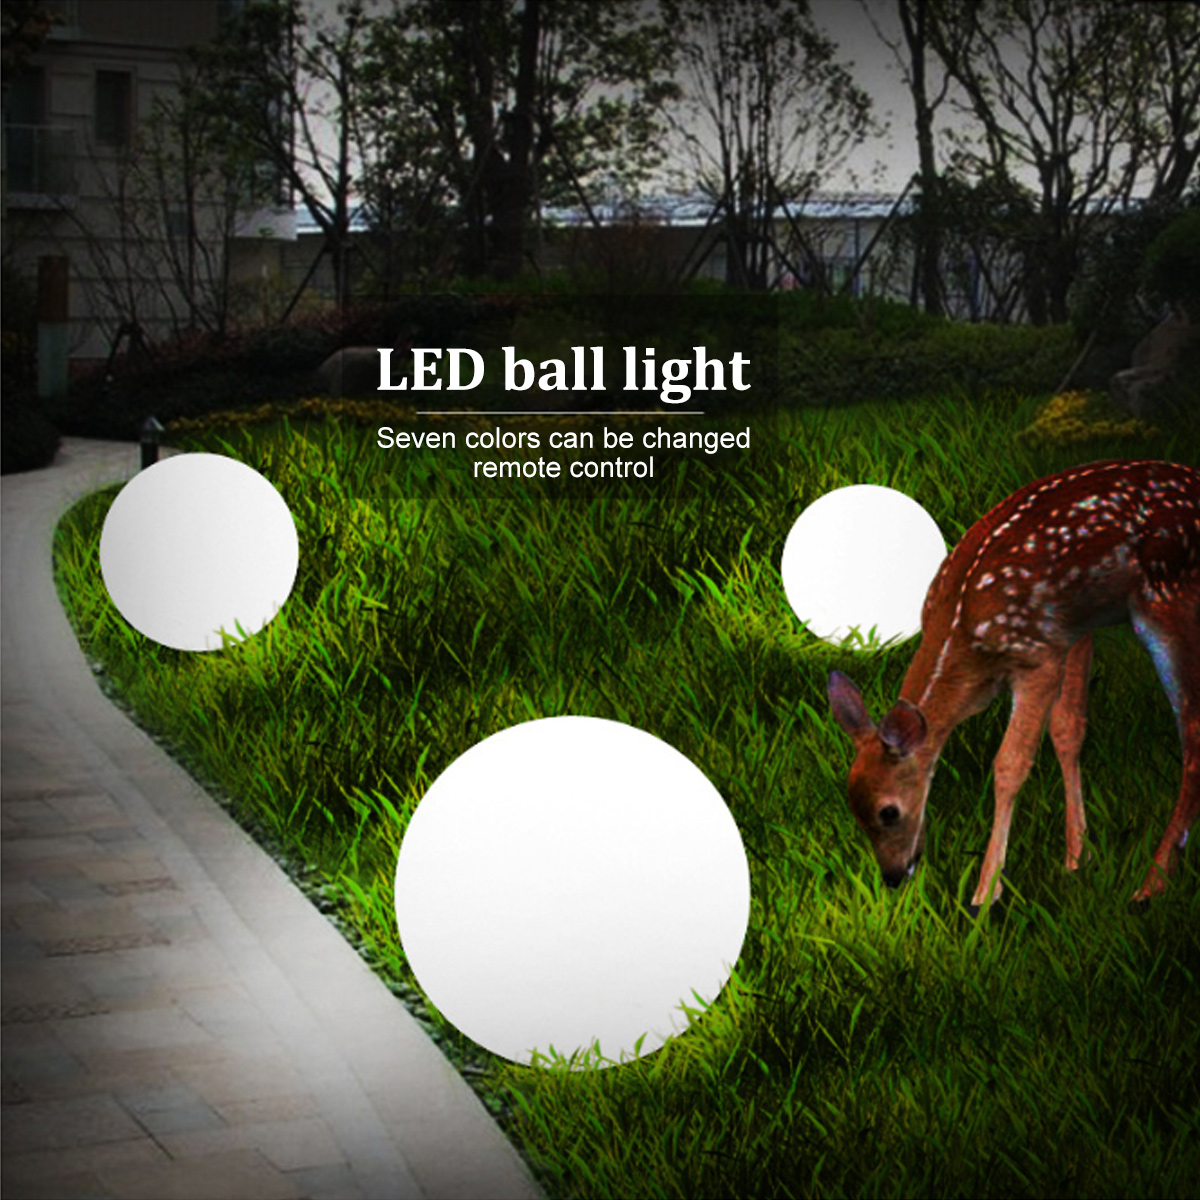 LED Swimming Pool Floating Rechargeable Ball Lamp Waterproof Indoor Outdoor/garden Front Courtyard Globe WeddingGarden Lawn KTV